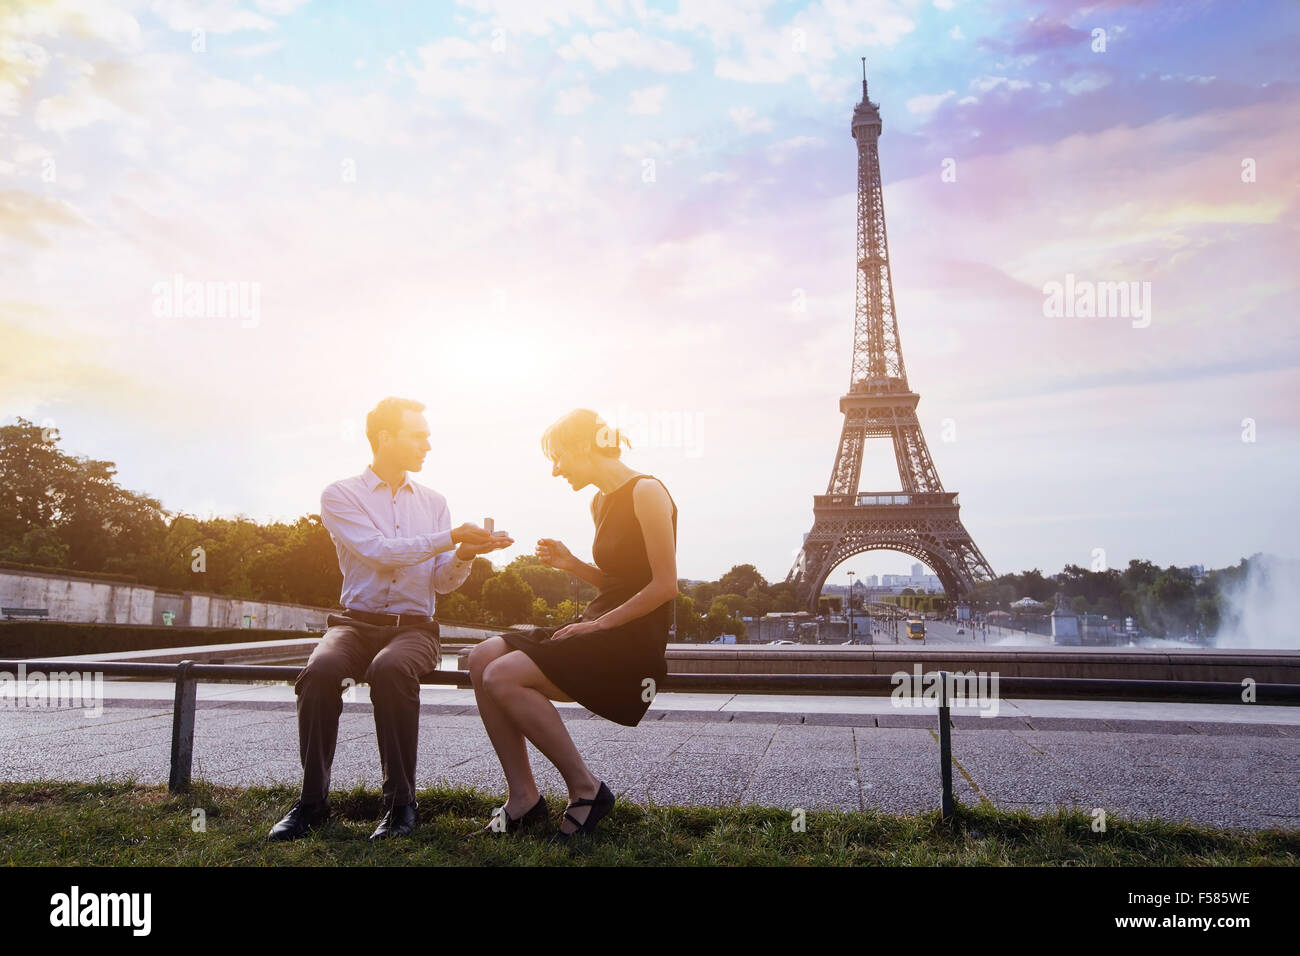 marry me, proposal at Eiffel Tower in Paris, beautiful silhouettes of young caucasian couple - Stock Image